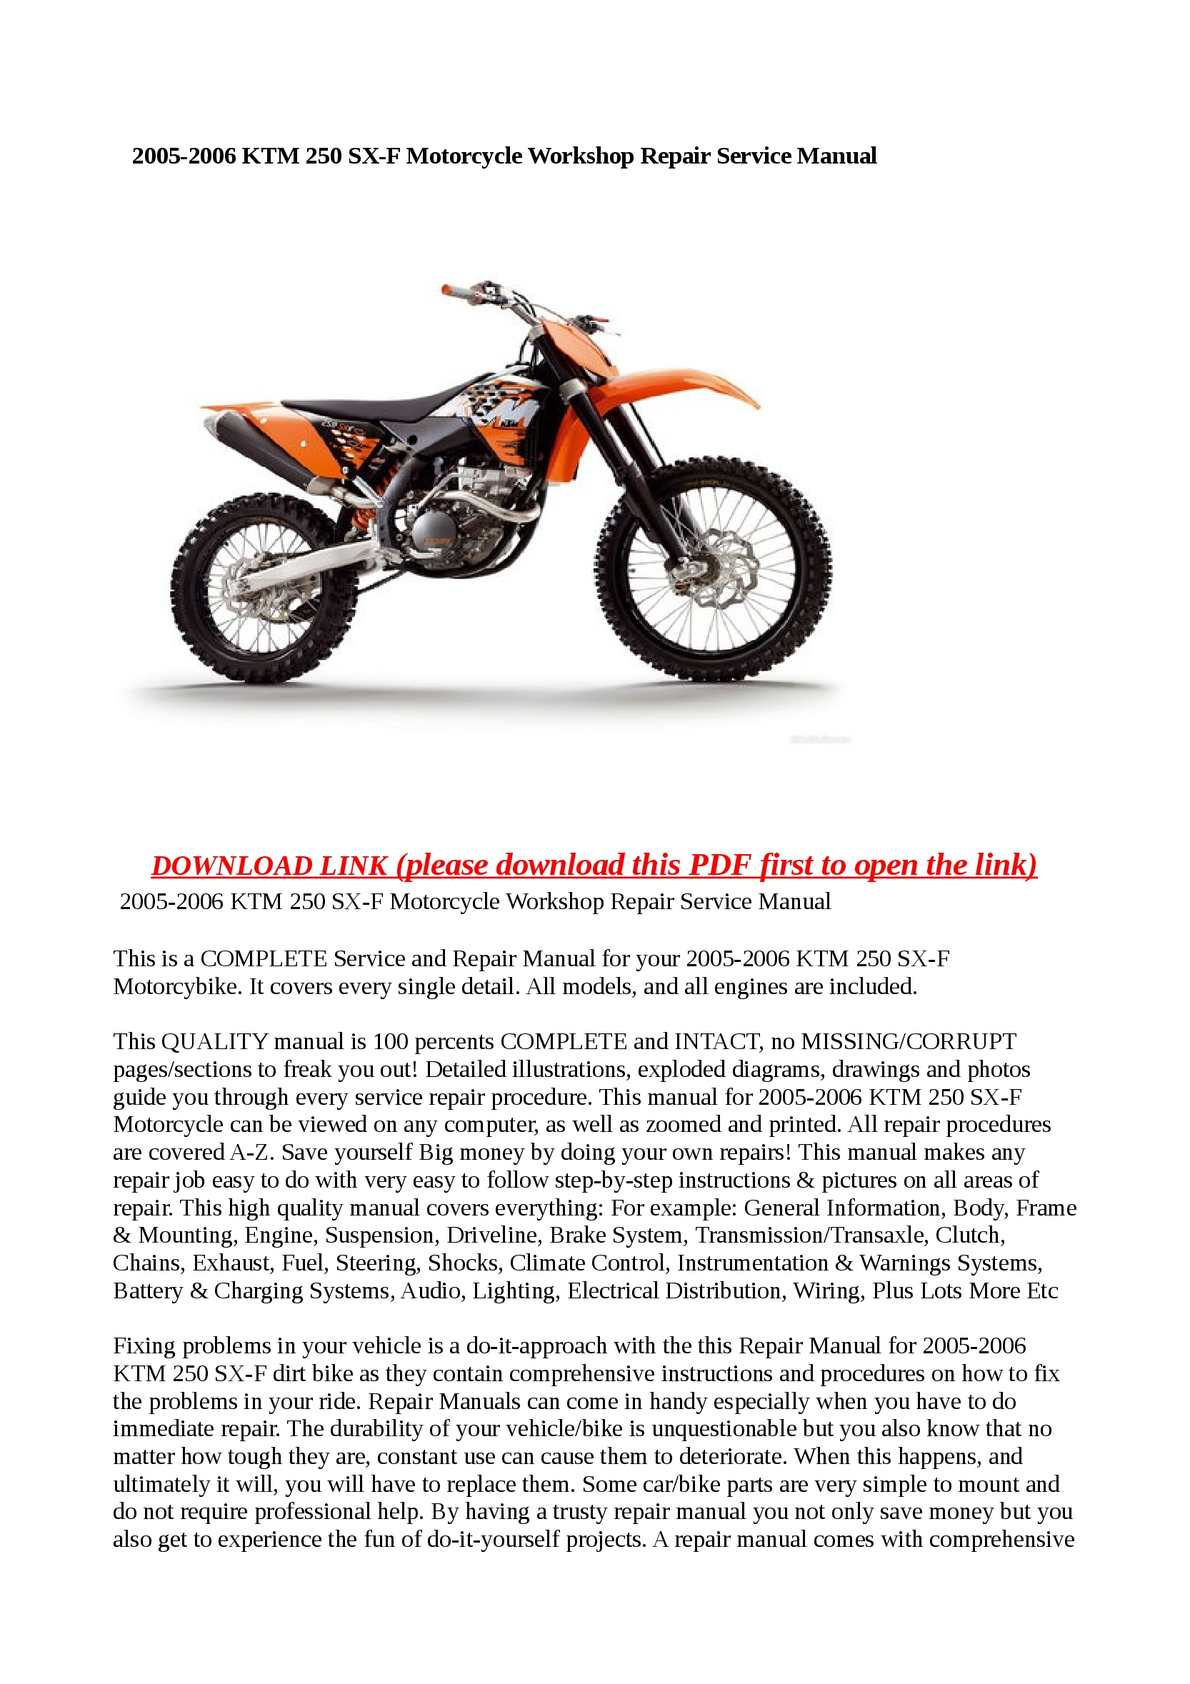 hight resolution of 2005 2006 ktm 250 sx f motorcycle workshop repair service manual